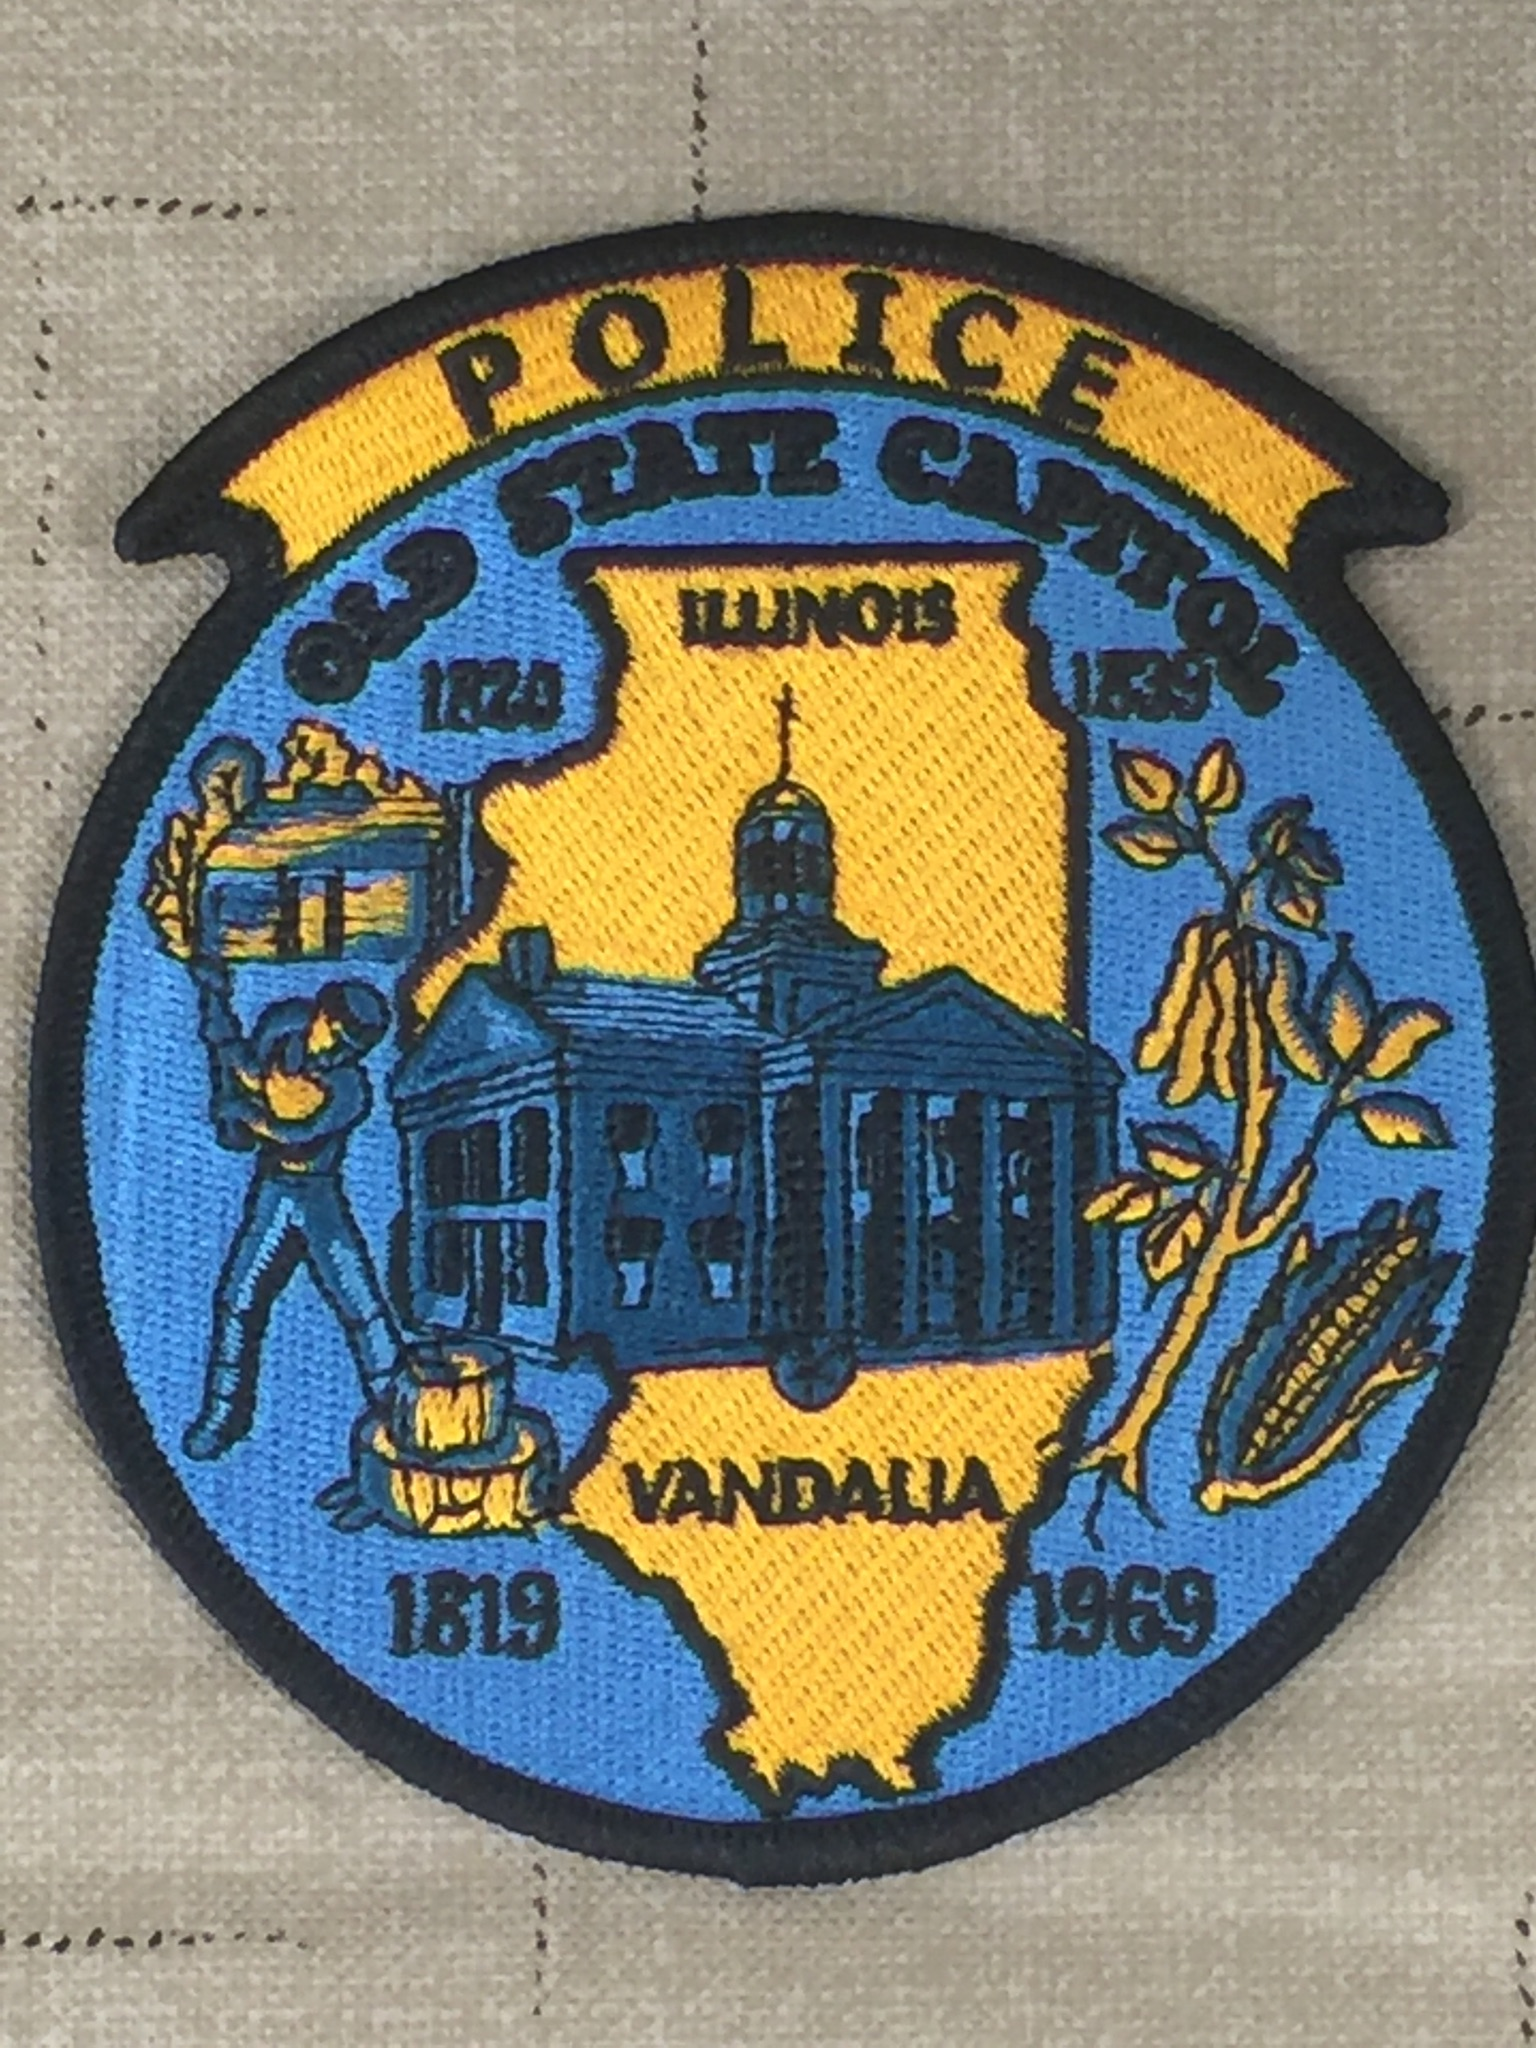 Vandalia PD reports---Individual arrested on pending charge of theft